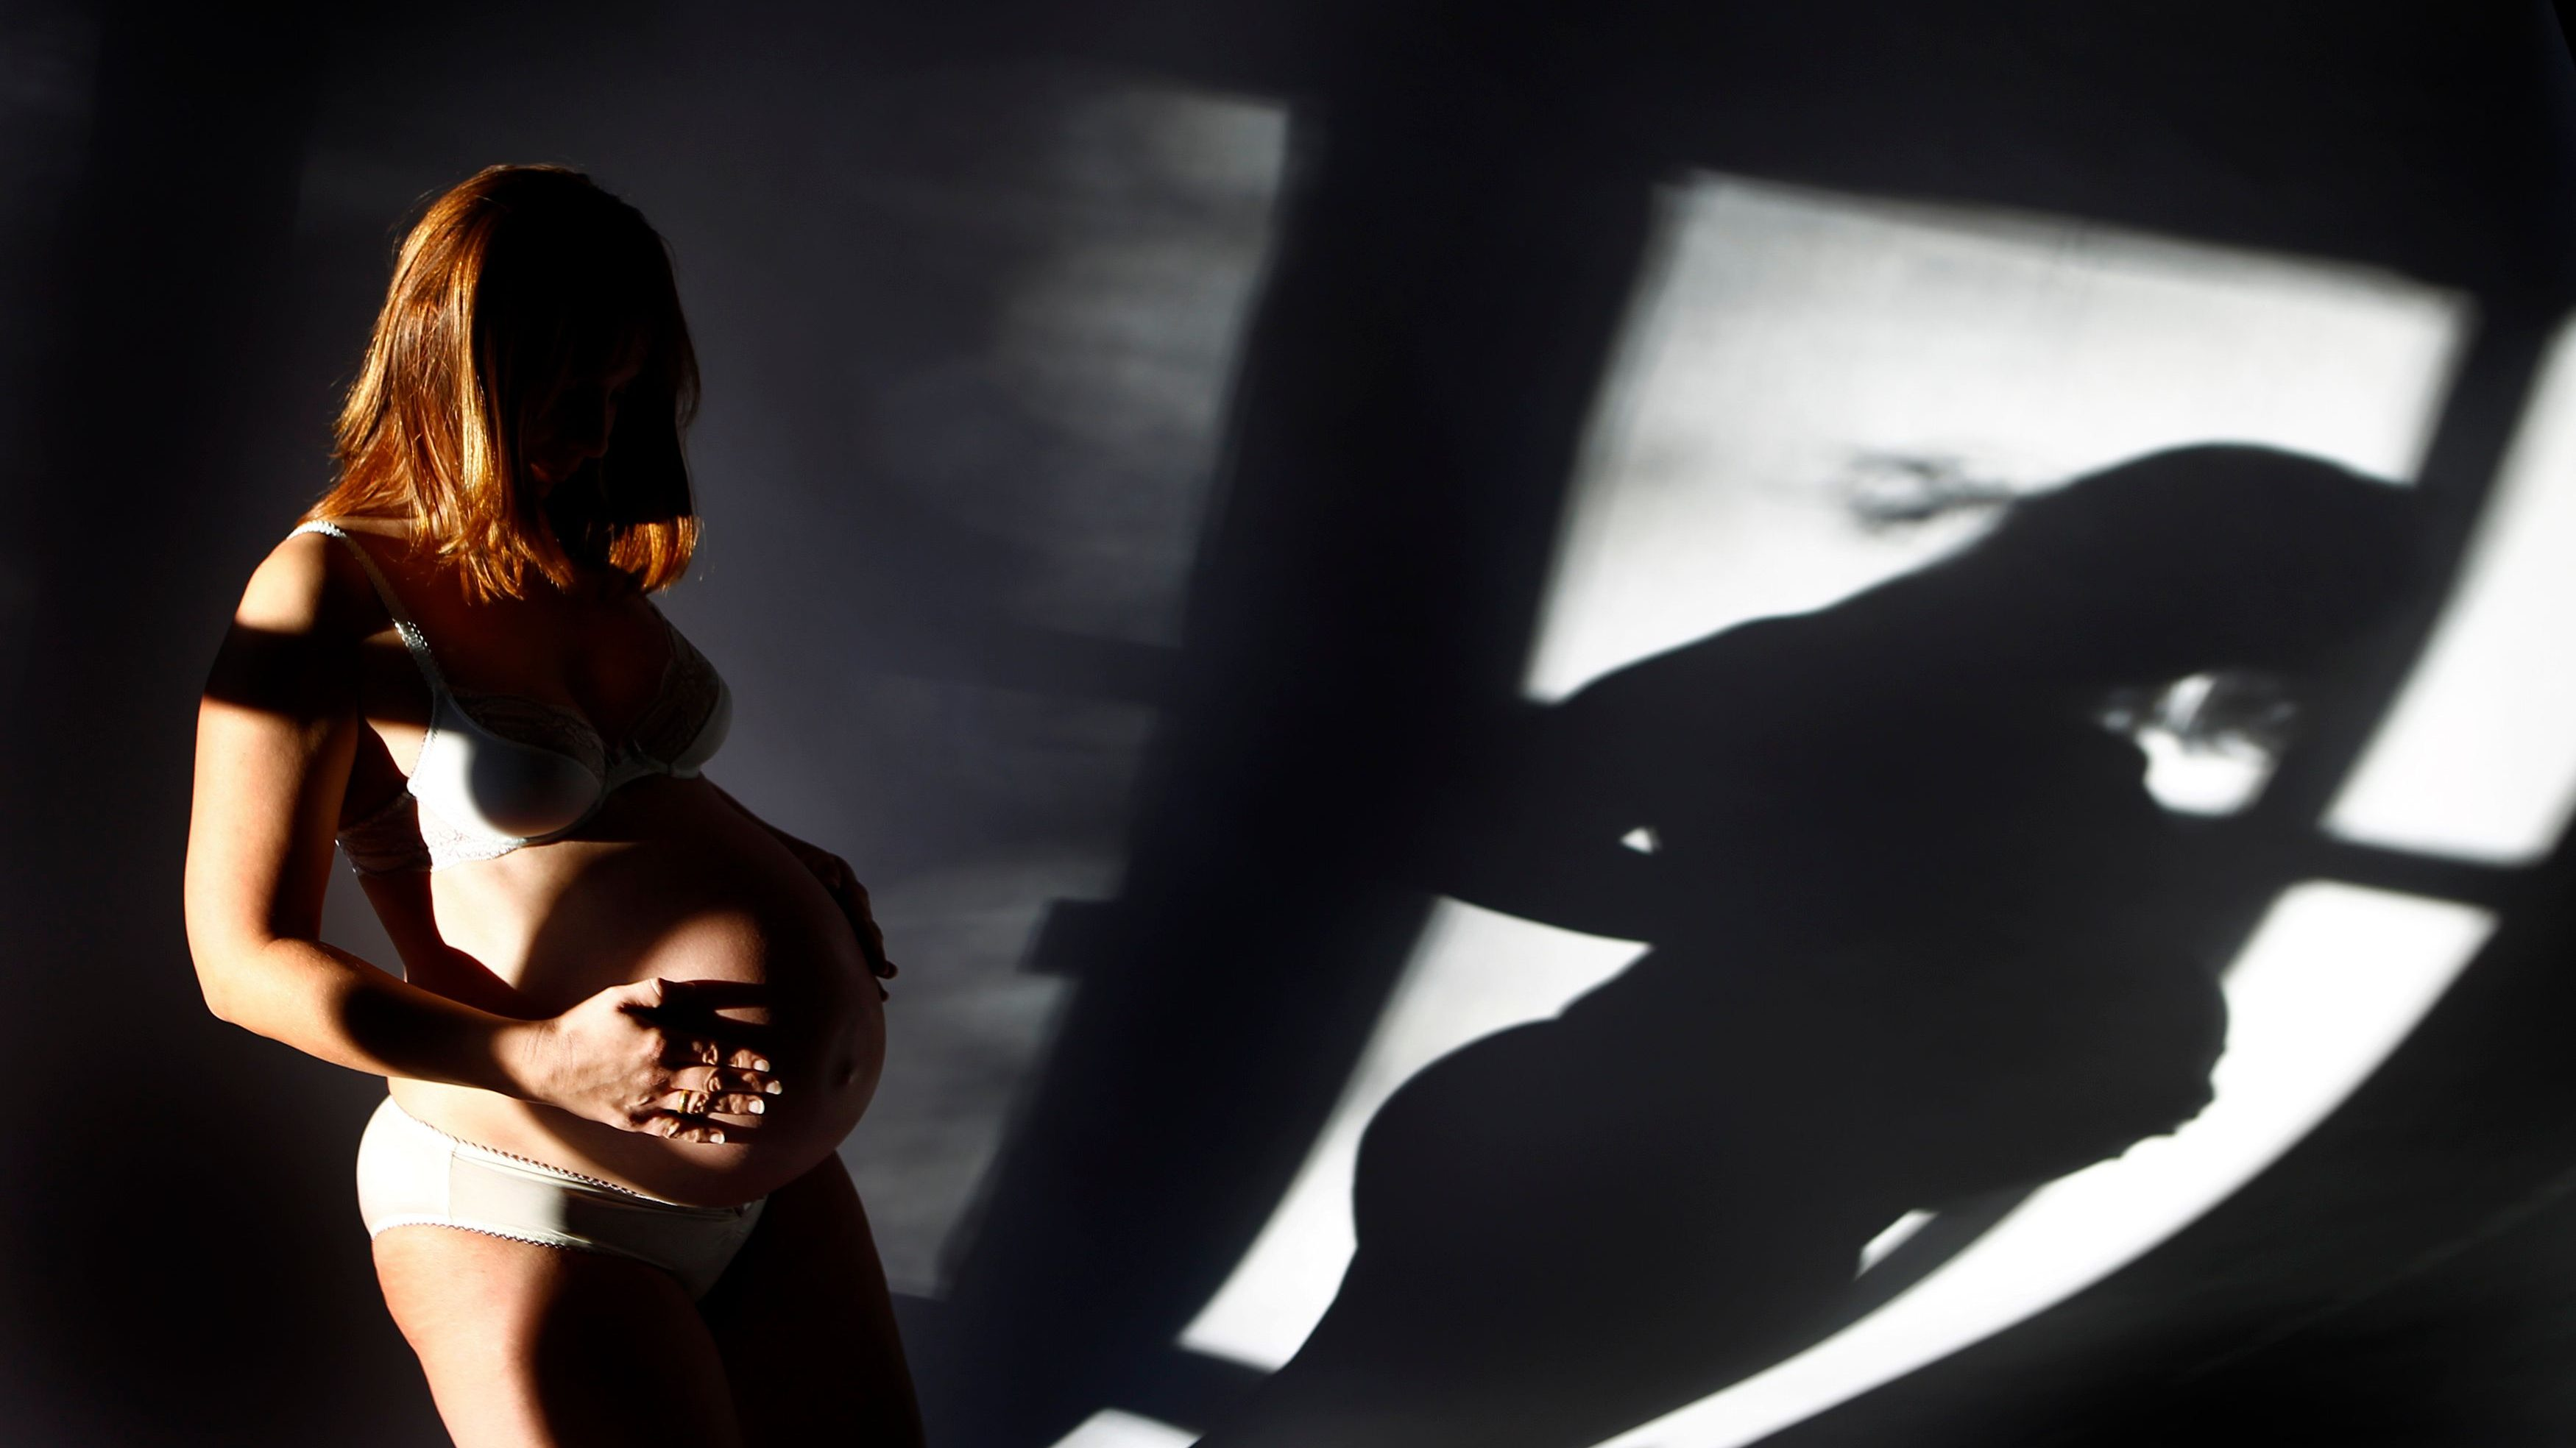 A woman in shadows holding her pregnant belly.